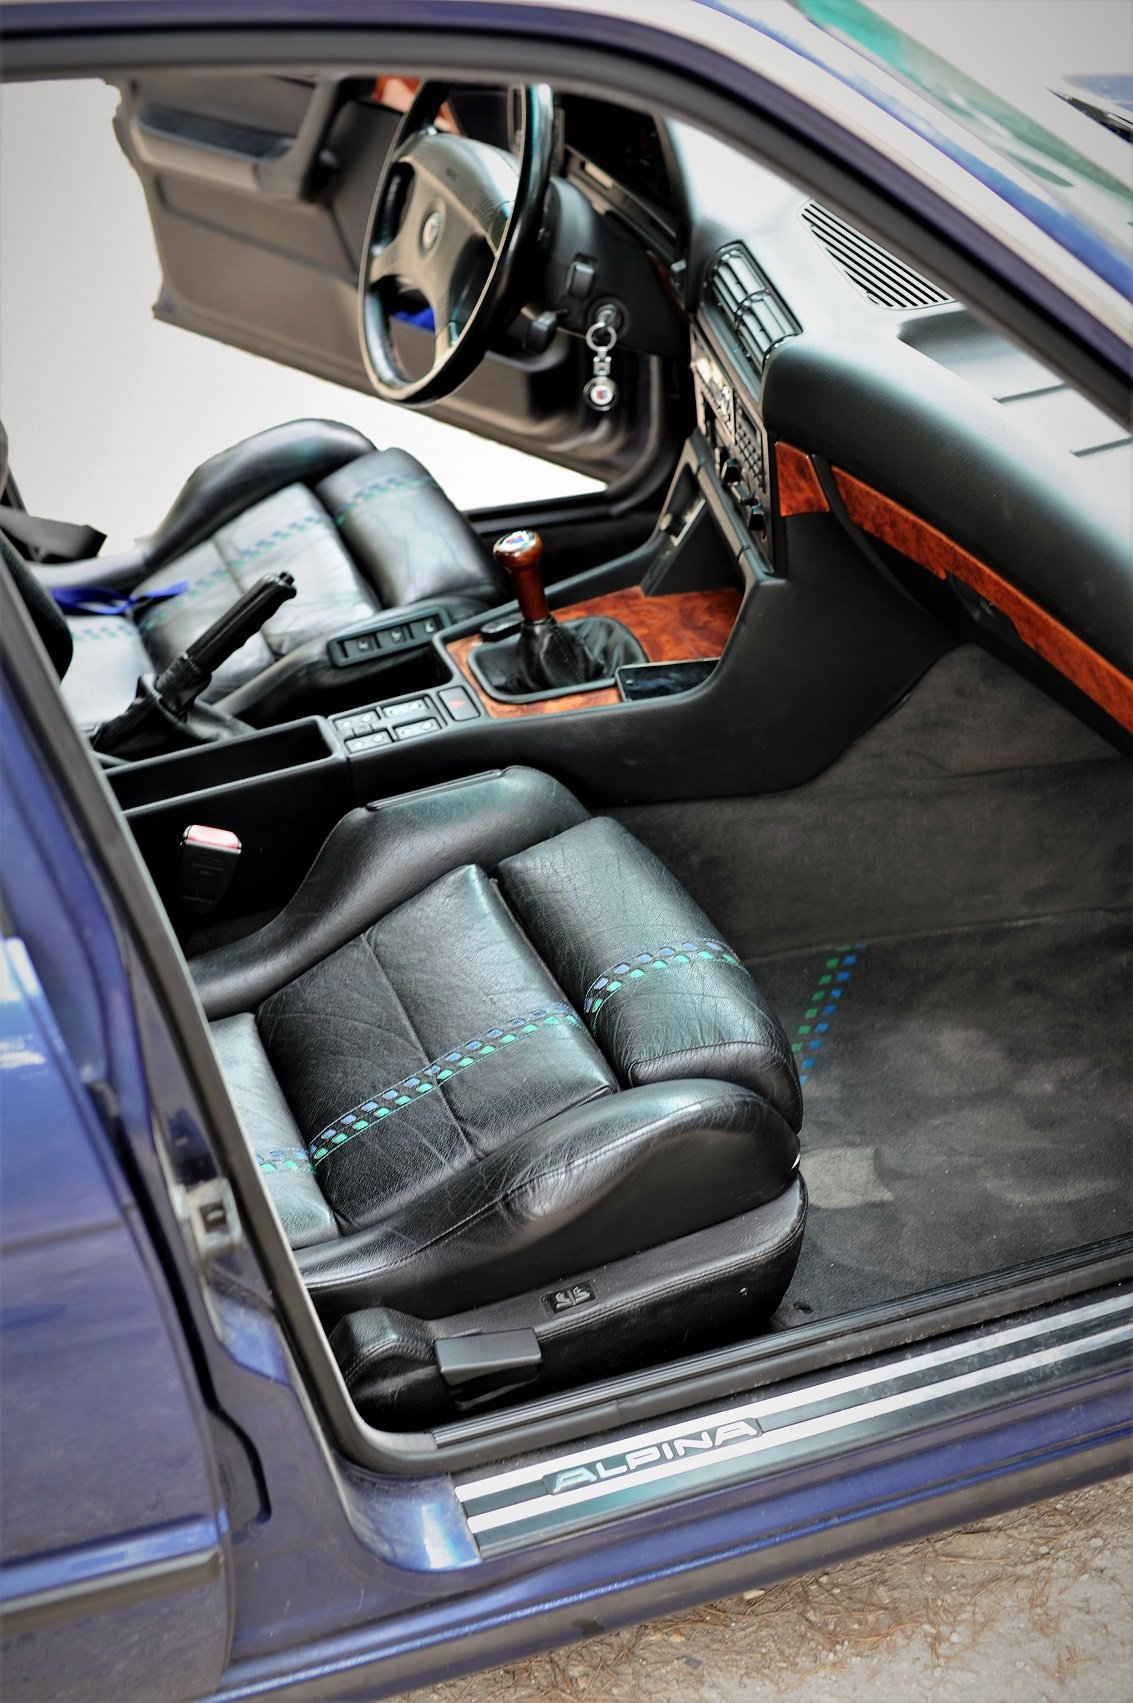 1991 - BMW ALPINA B10 Biturbo N°334/507 For Sale by Auction (picture 4 of 5)